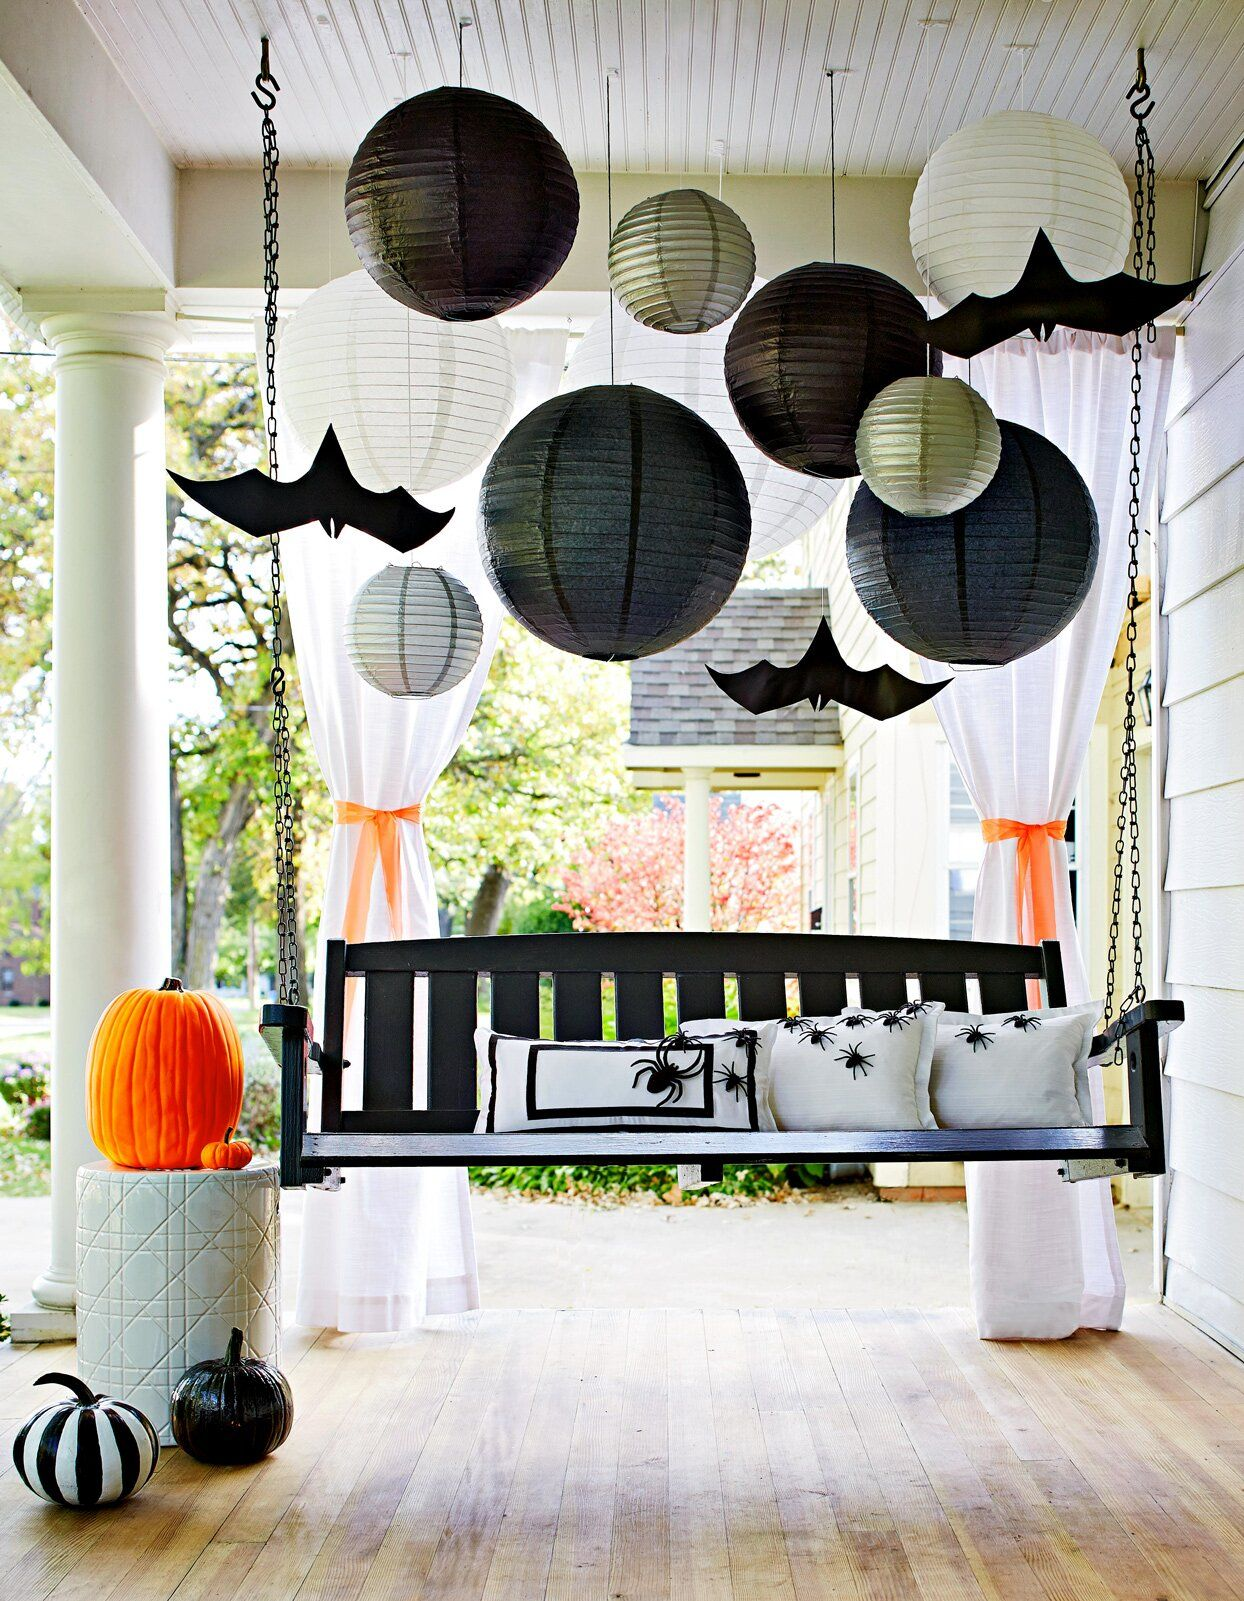 47 Easy Halloween Decorations To Make Right Now In 2020 Halloween Party Themes Backyard Halloween Party Outdoor Halloween Party Decorations